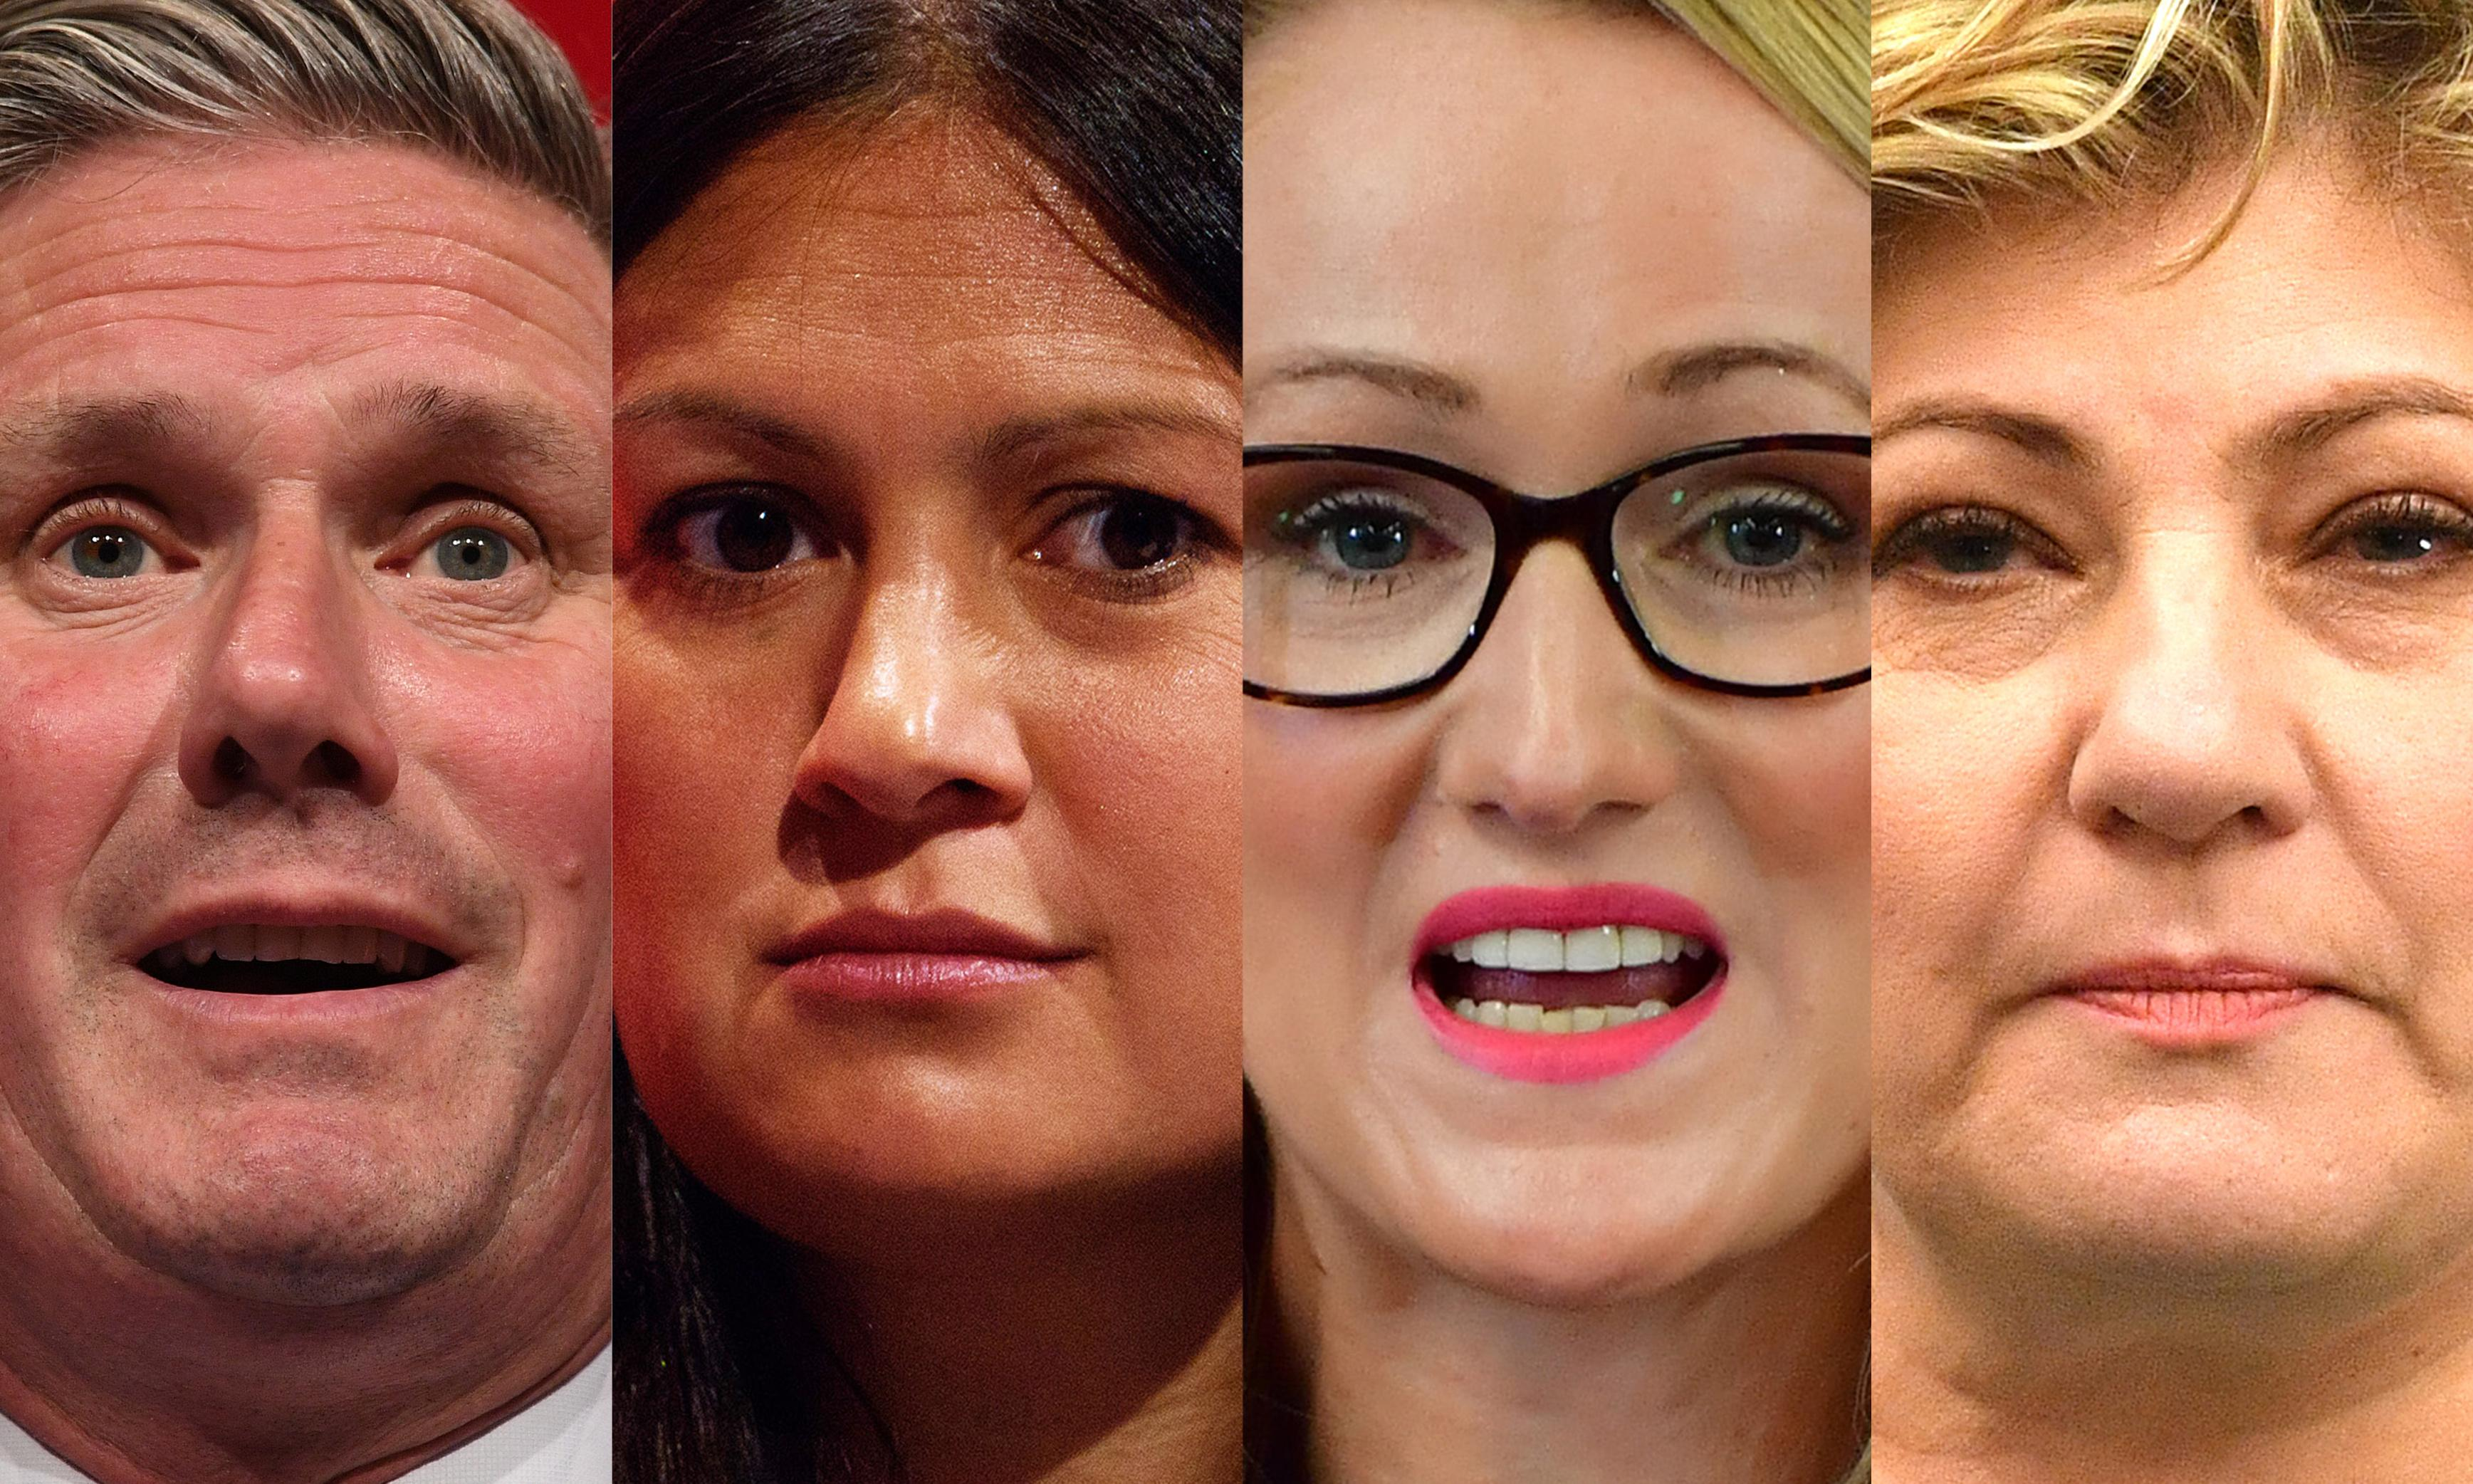 Why should Keir Starmer step aside? His rivals have few feminist credentials